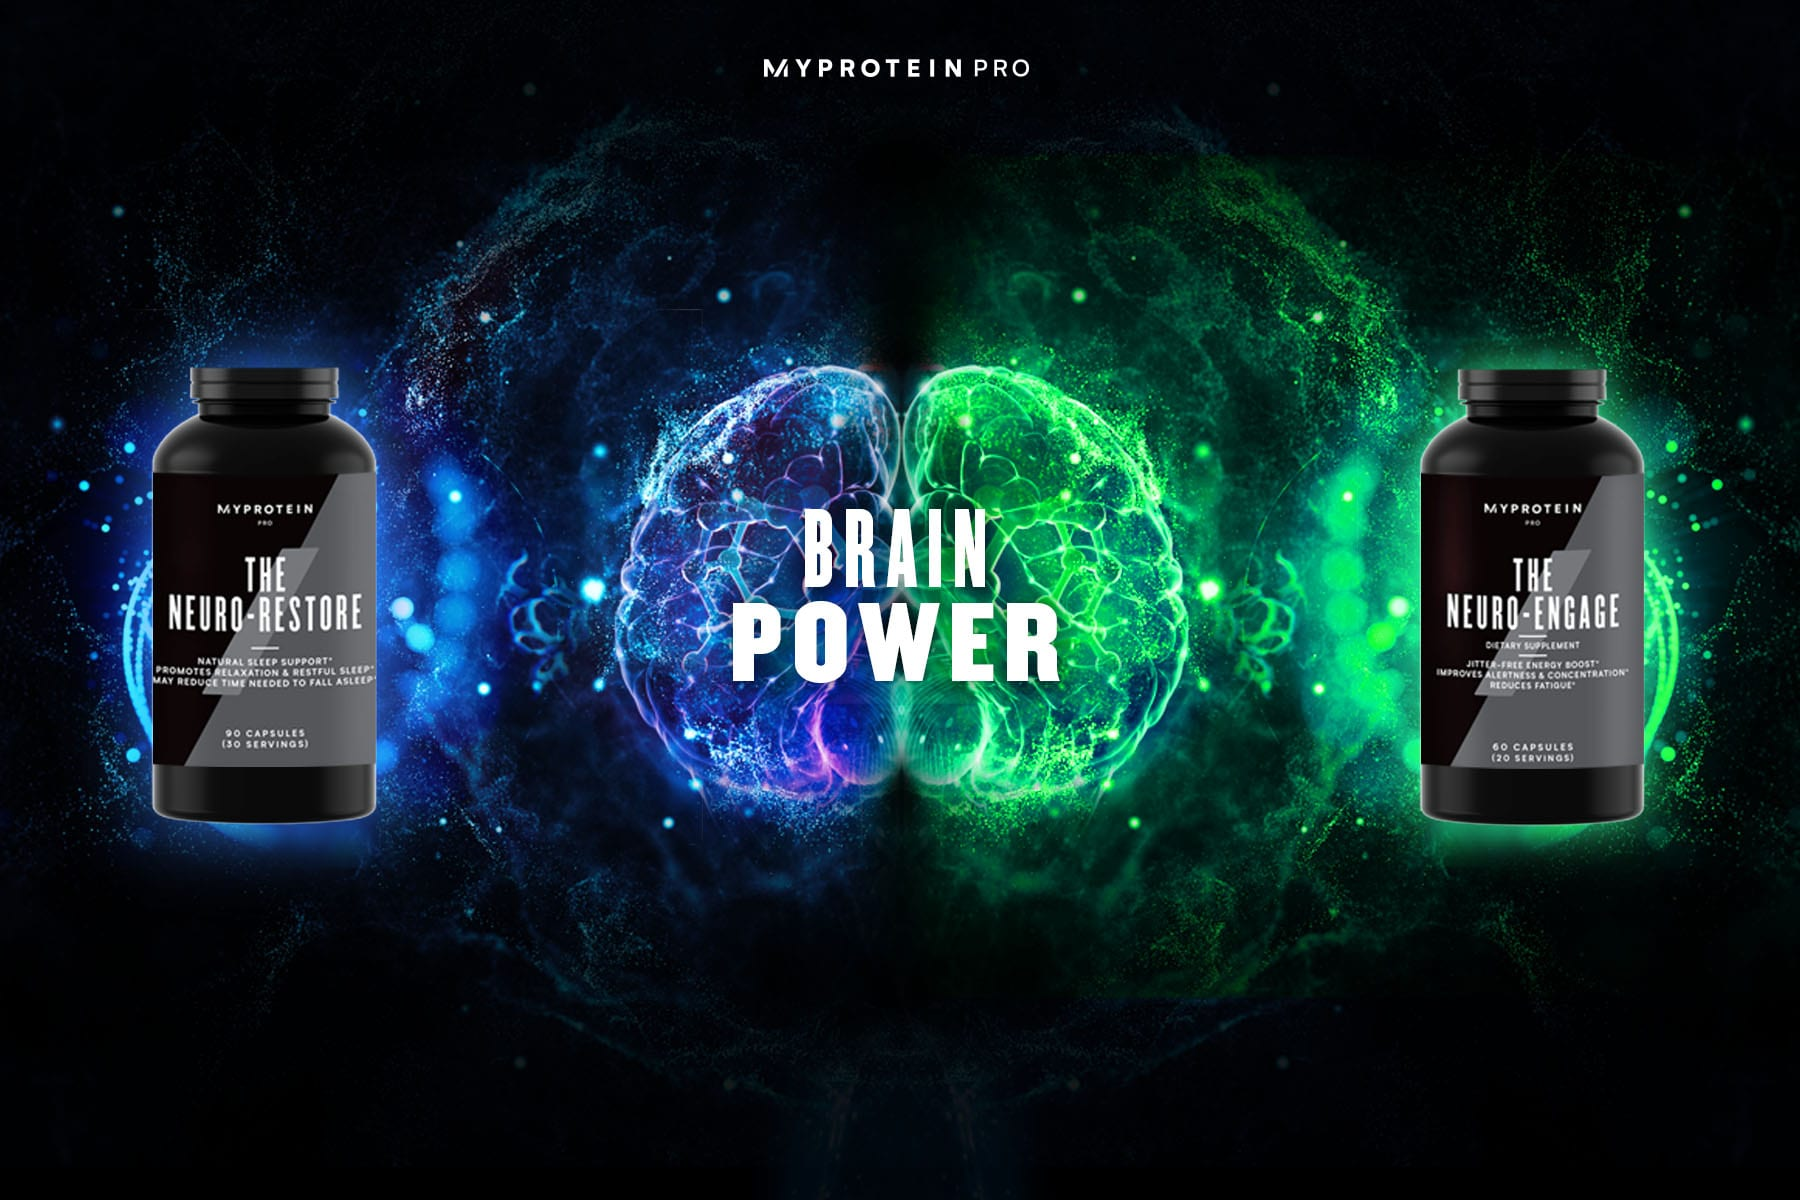 THE Neuro Range: Introducing THE Neuro Engage and THE Neuro Restore